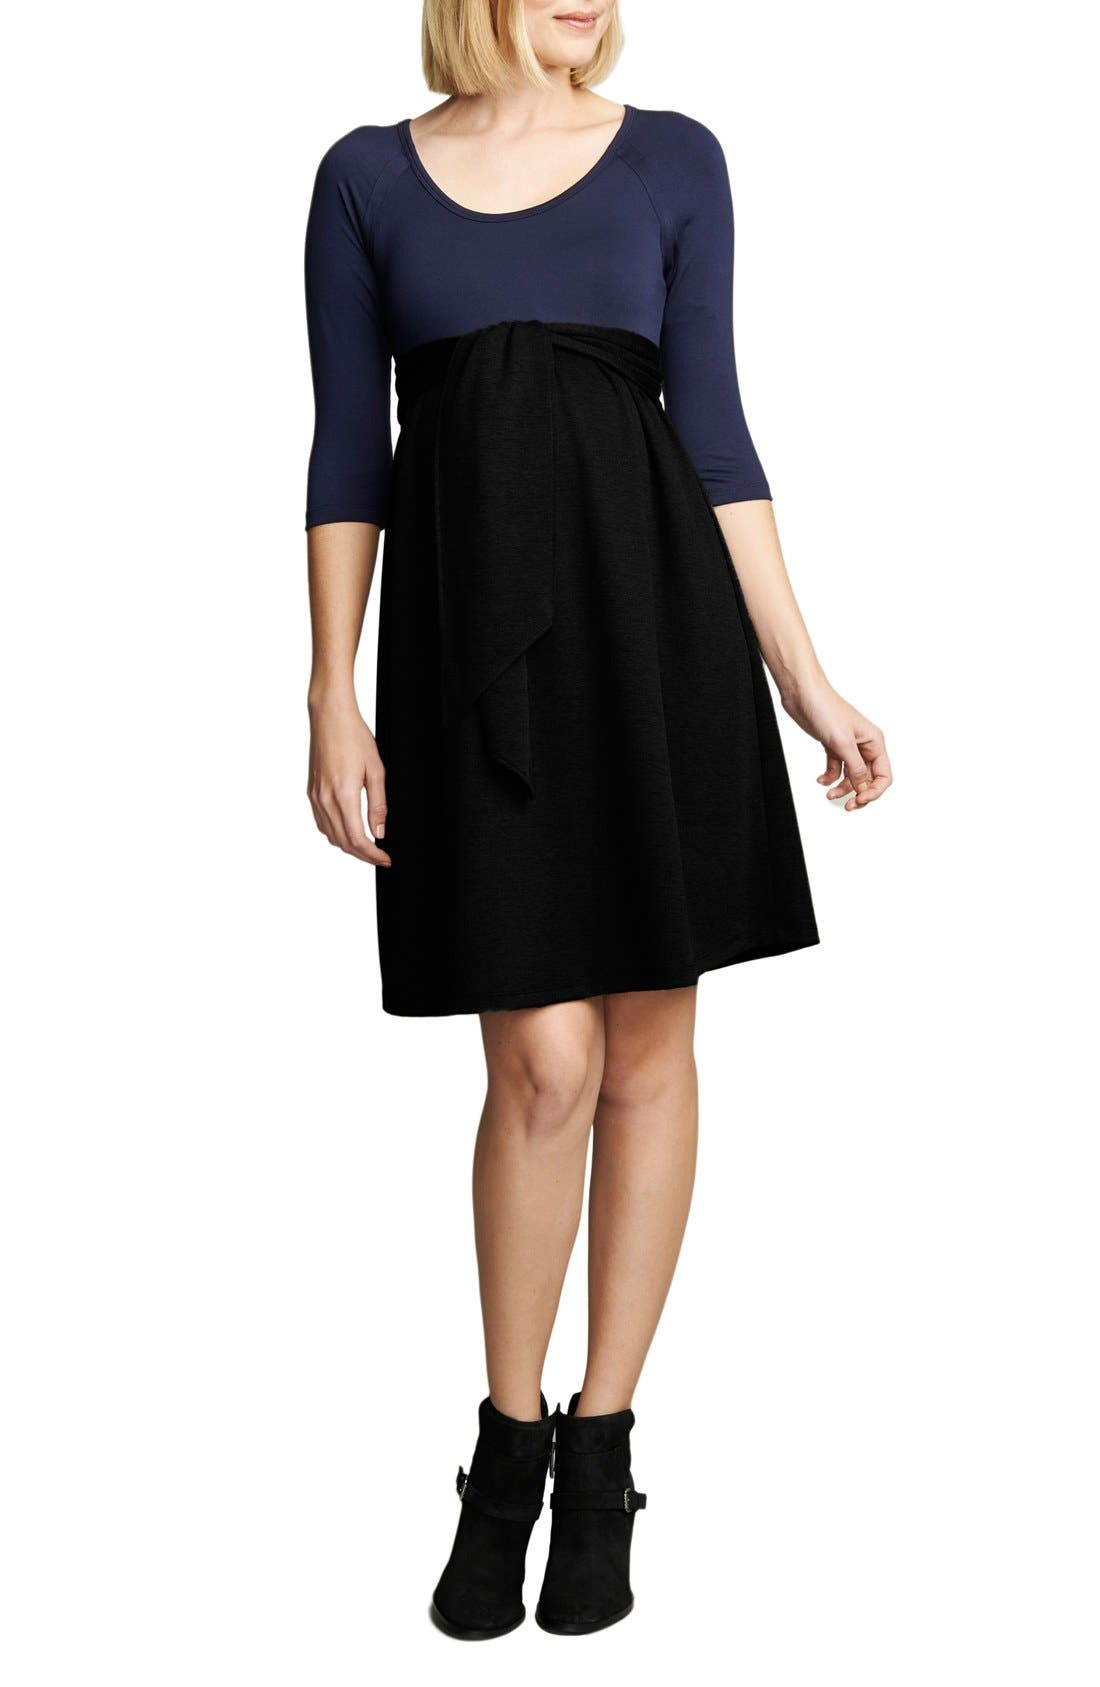 Tie Front Maternity Dress,                         Main,                         color, Navy/Black